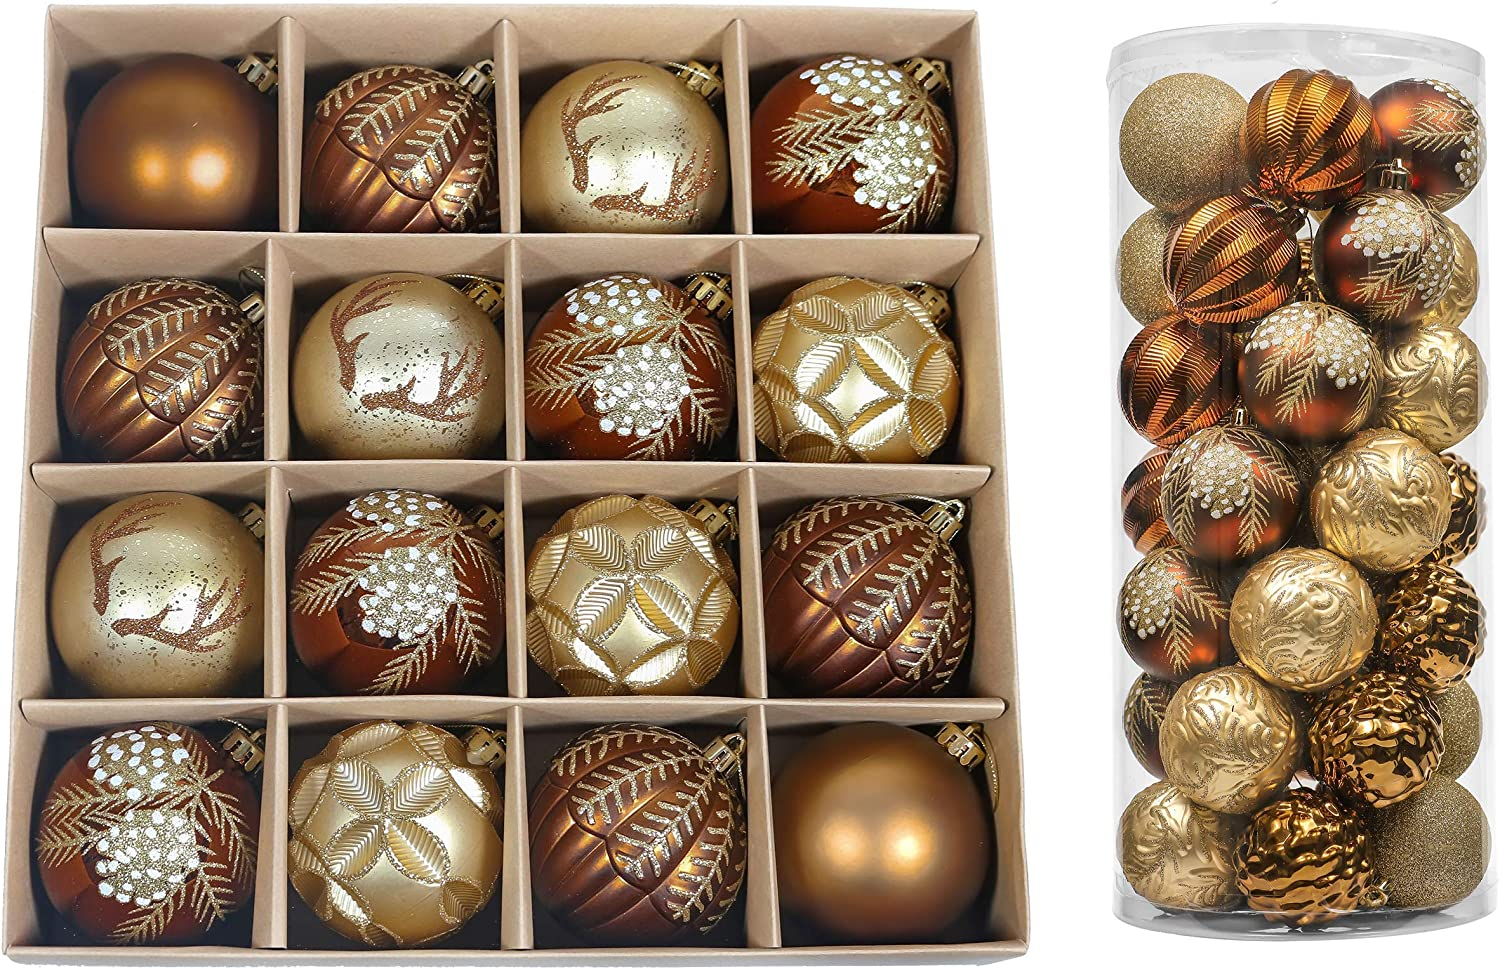 Valery Madelyn Woodland Copper Gold Christmas Ball Ornaments Bundle (2 Items) | 16ct 80mm Christmas Ornament Balls + 35ct 70mm Xmas Balls for Christmas Tree Decor